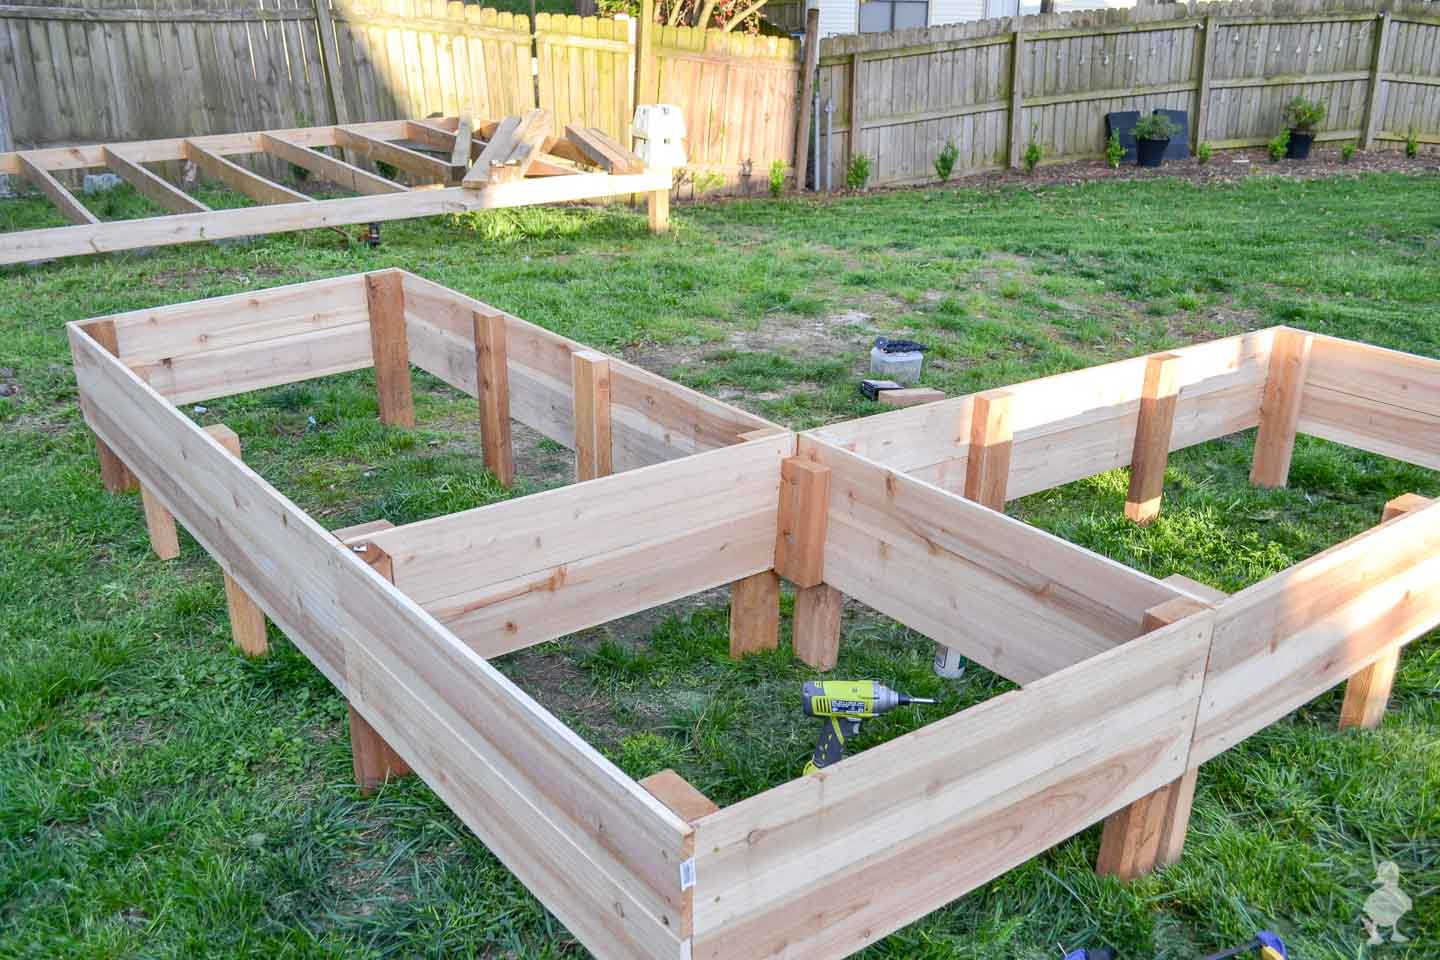 raised garden beds before digging into the ground - pub shed foundation in background